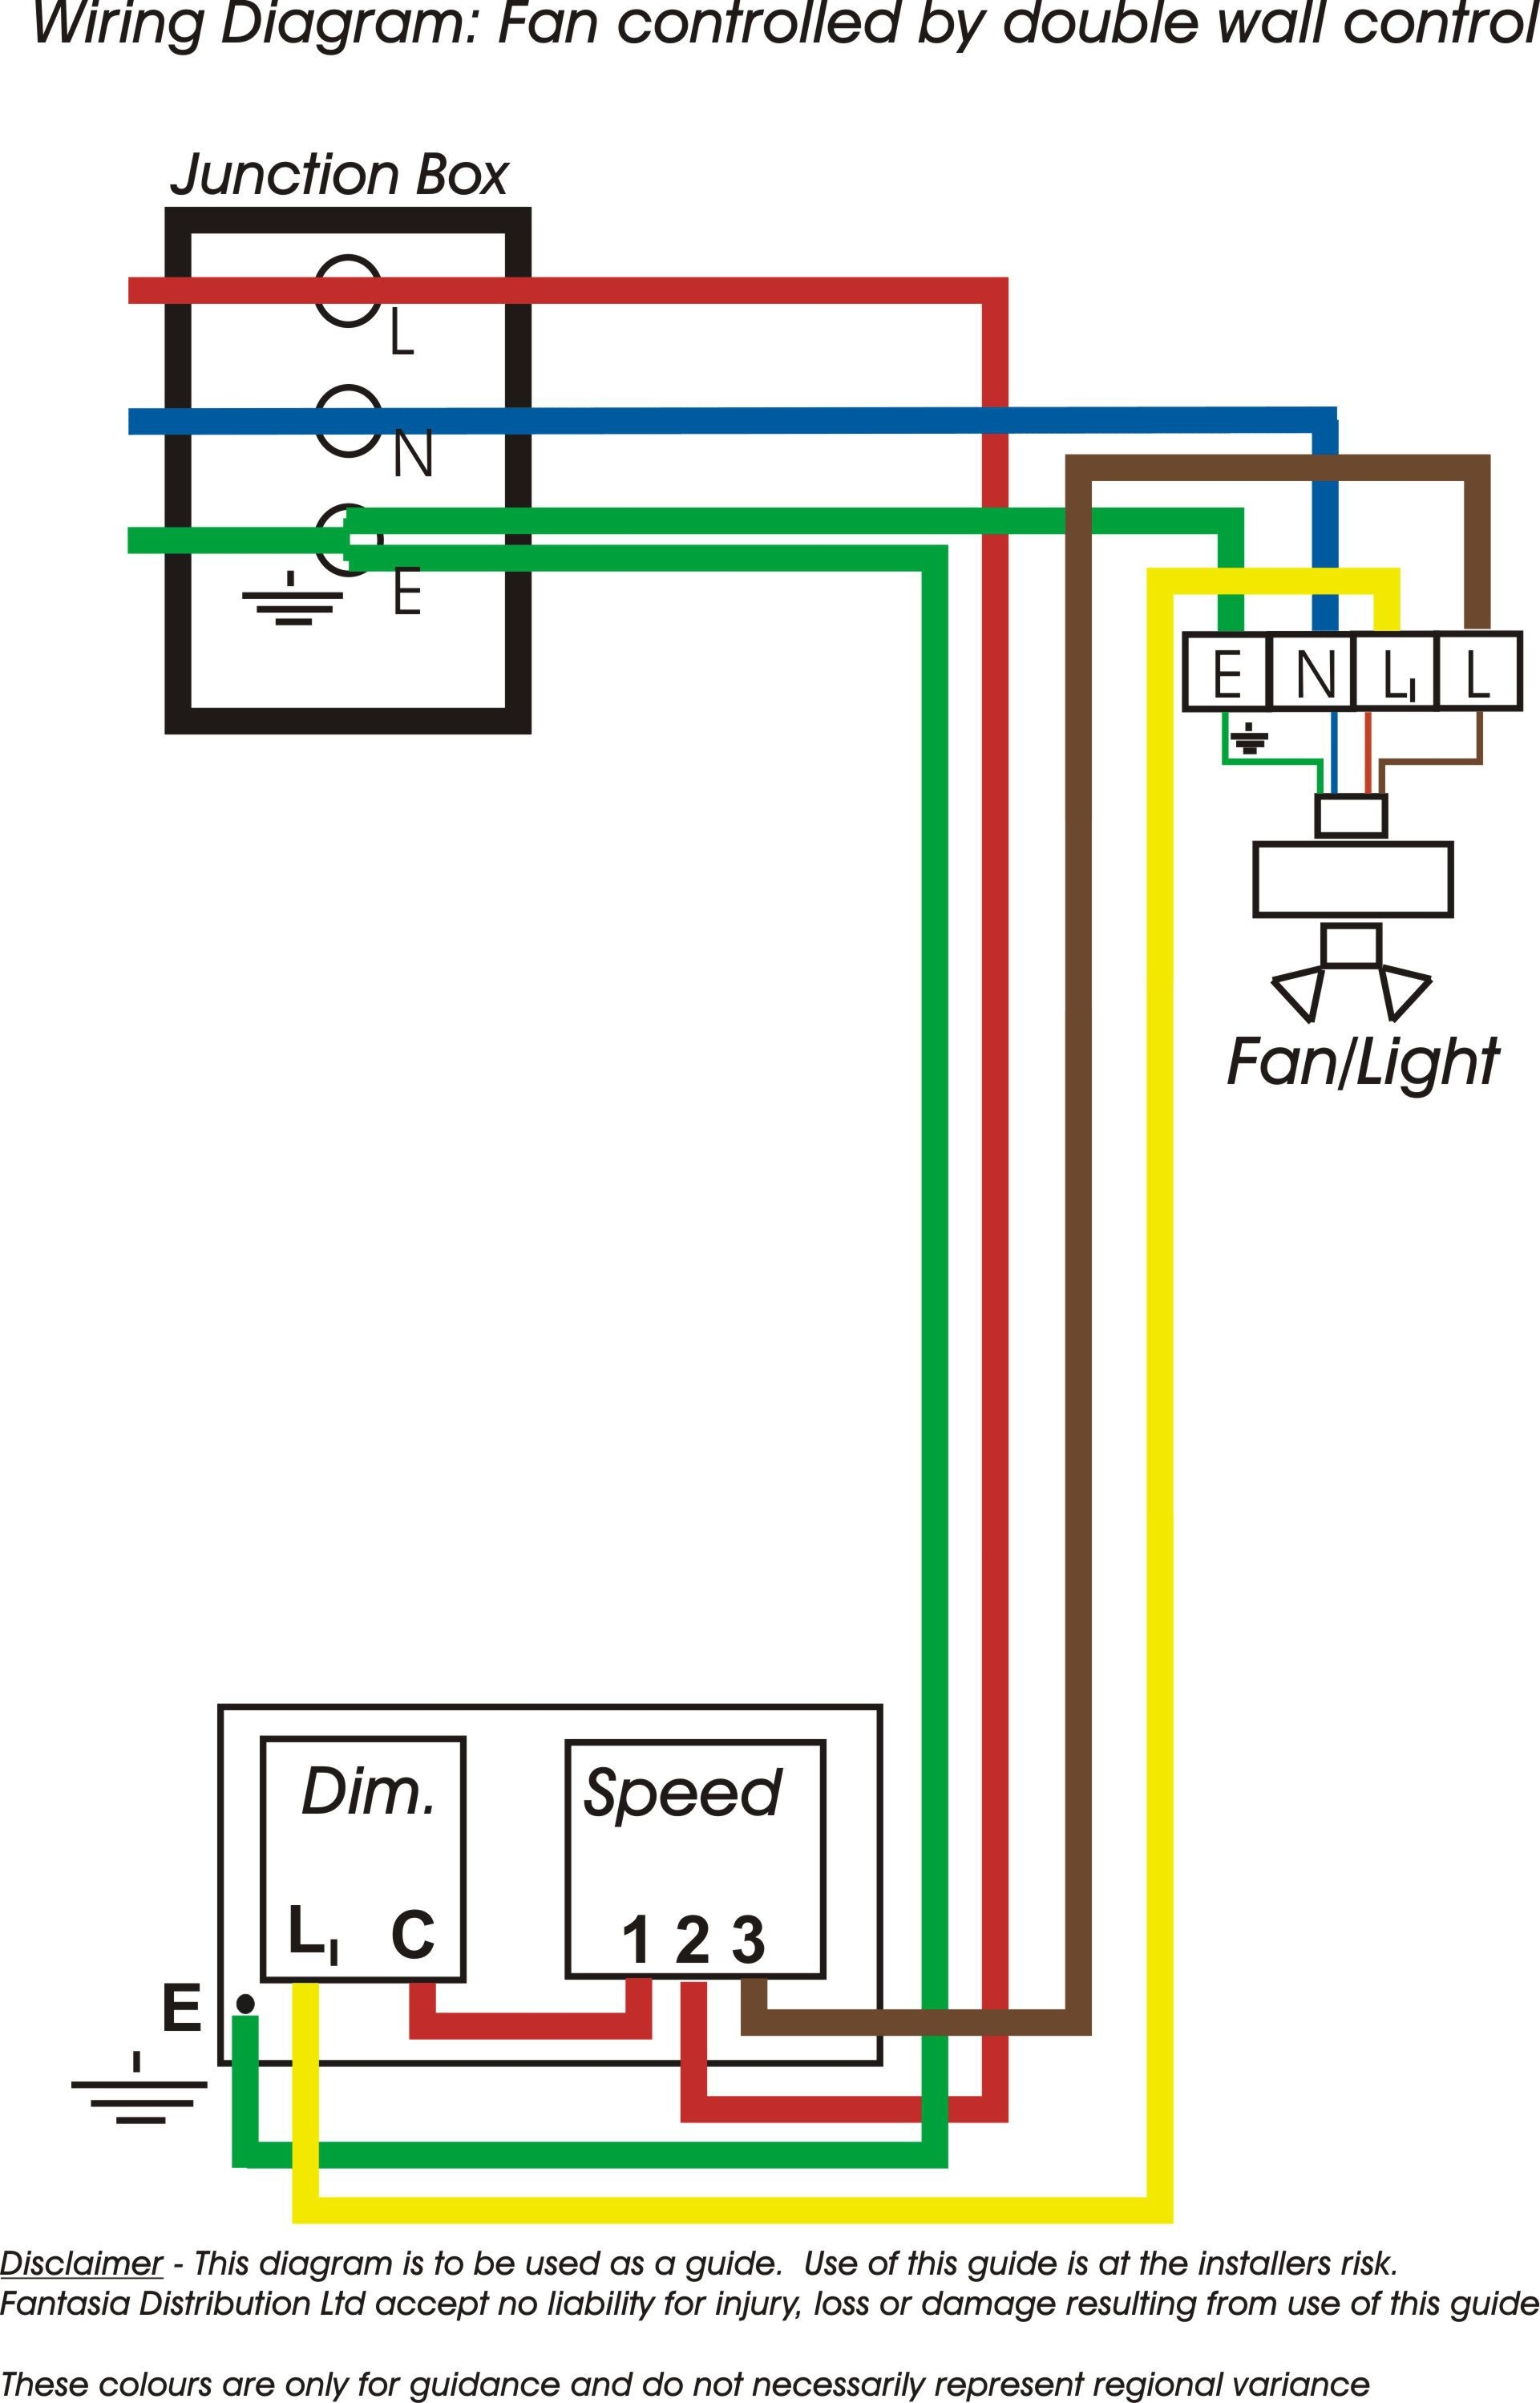 jin you e70469 wiring diagram Download-Electric Fan Wiring Diagram Capacitor New Ceiling Fan Wiring Diagram 16-s